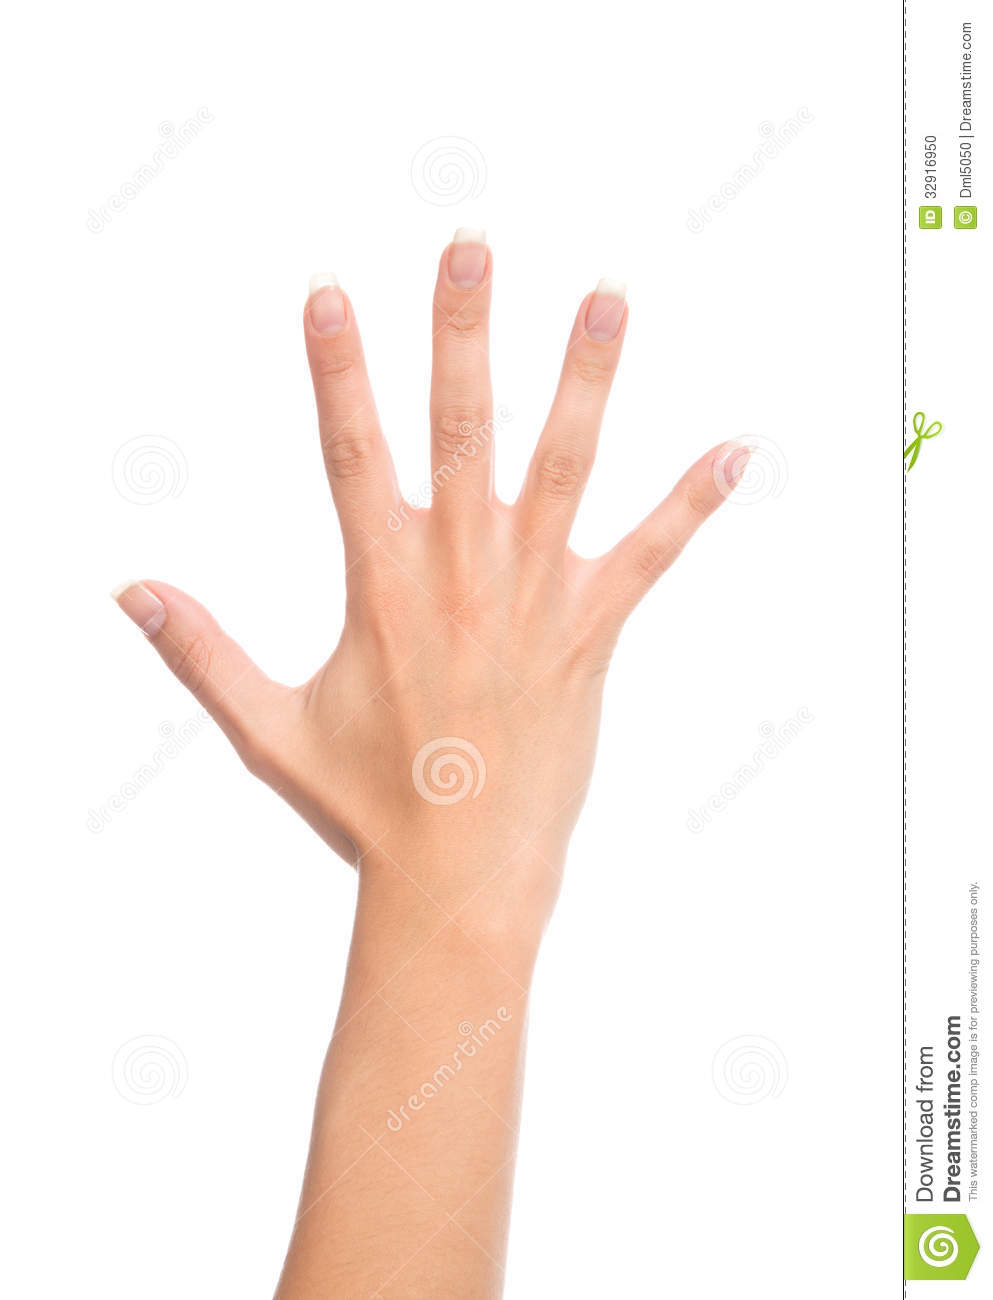 Manicured female open hand gesture number five fingers up for 33 fingers salon